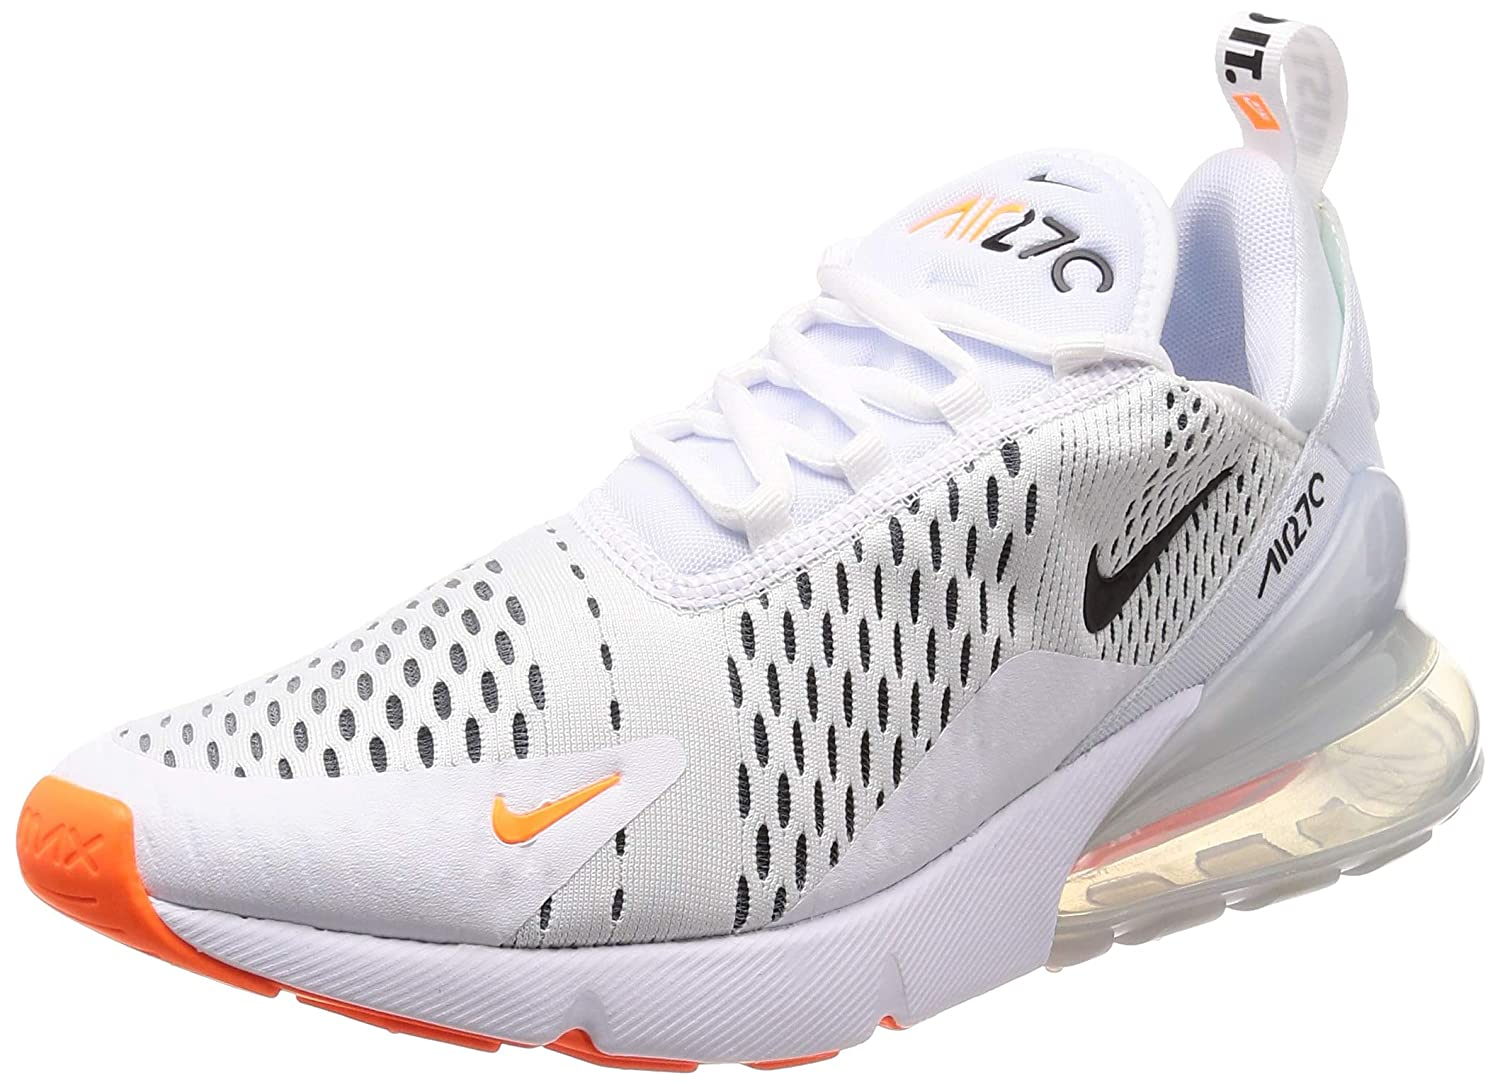 4e99bd2ed66 Amazon.com  Nike Mens Air Max 270 Running Shoes White Black Total Orange  AH8050-106 Size 8.5  Sports   Outdoors